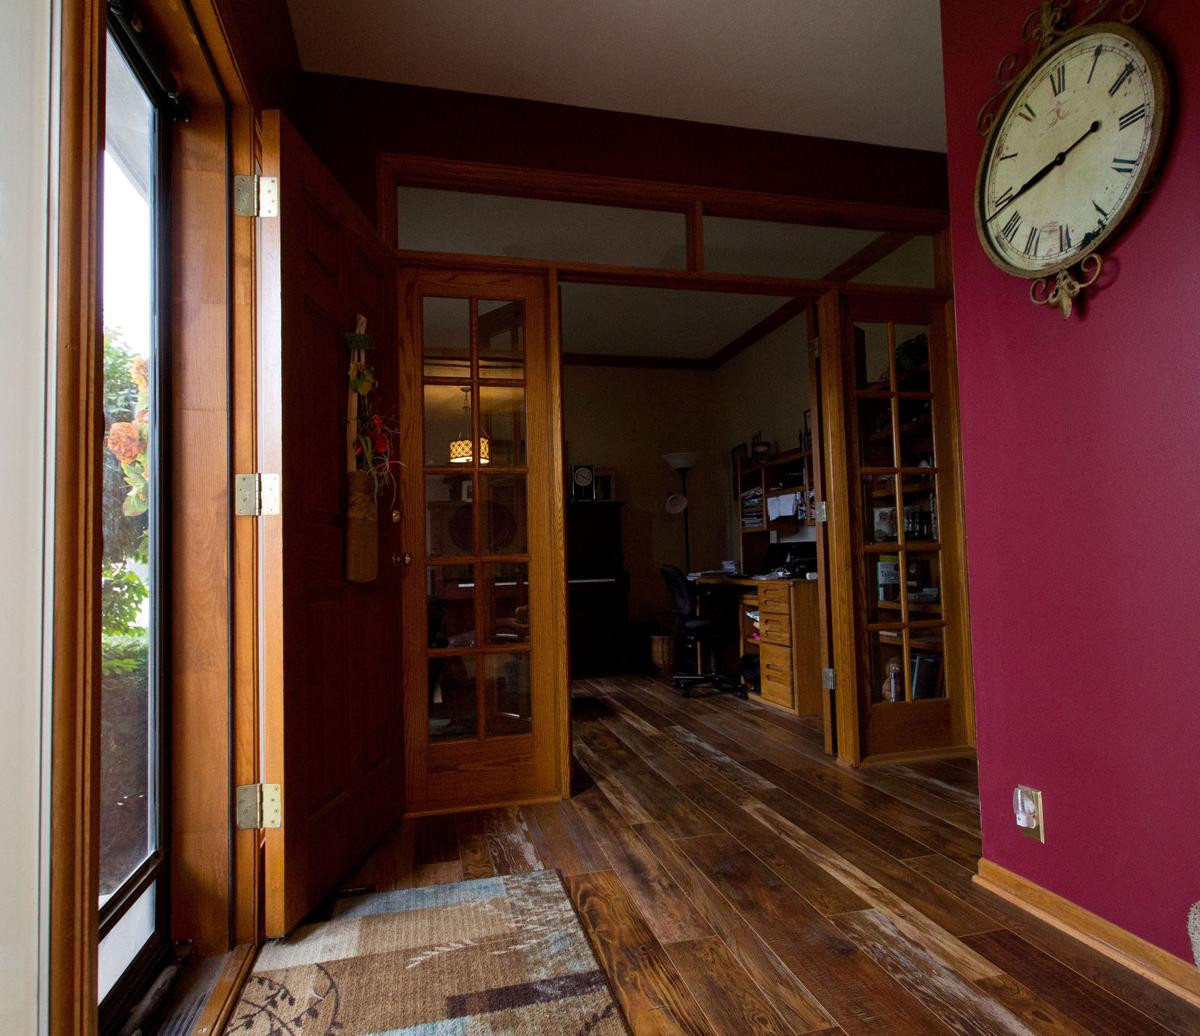 best deal hardwood floor moulding of the carpets gotta go and youre thinking hardwood flooring now with the carpets gotta go and youre thinking hardwood flooring now what living omaha com